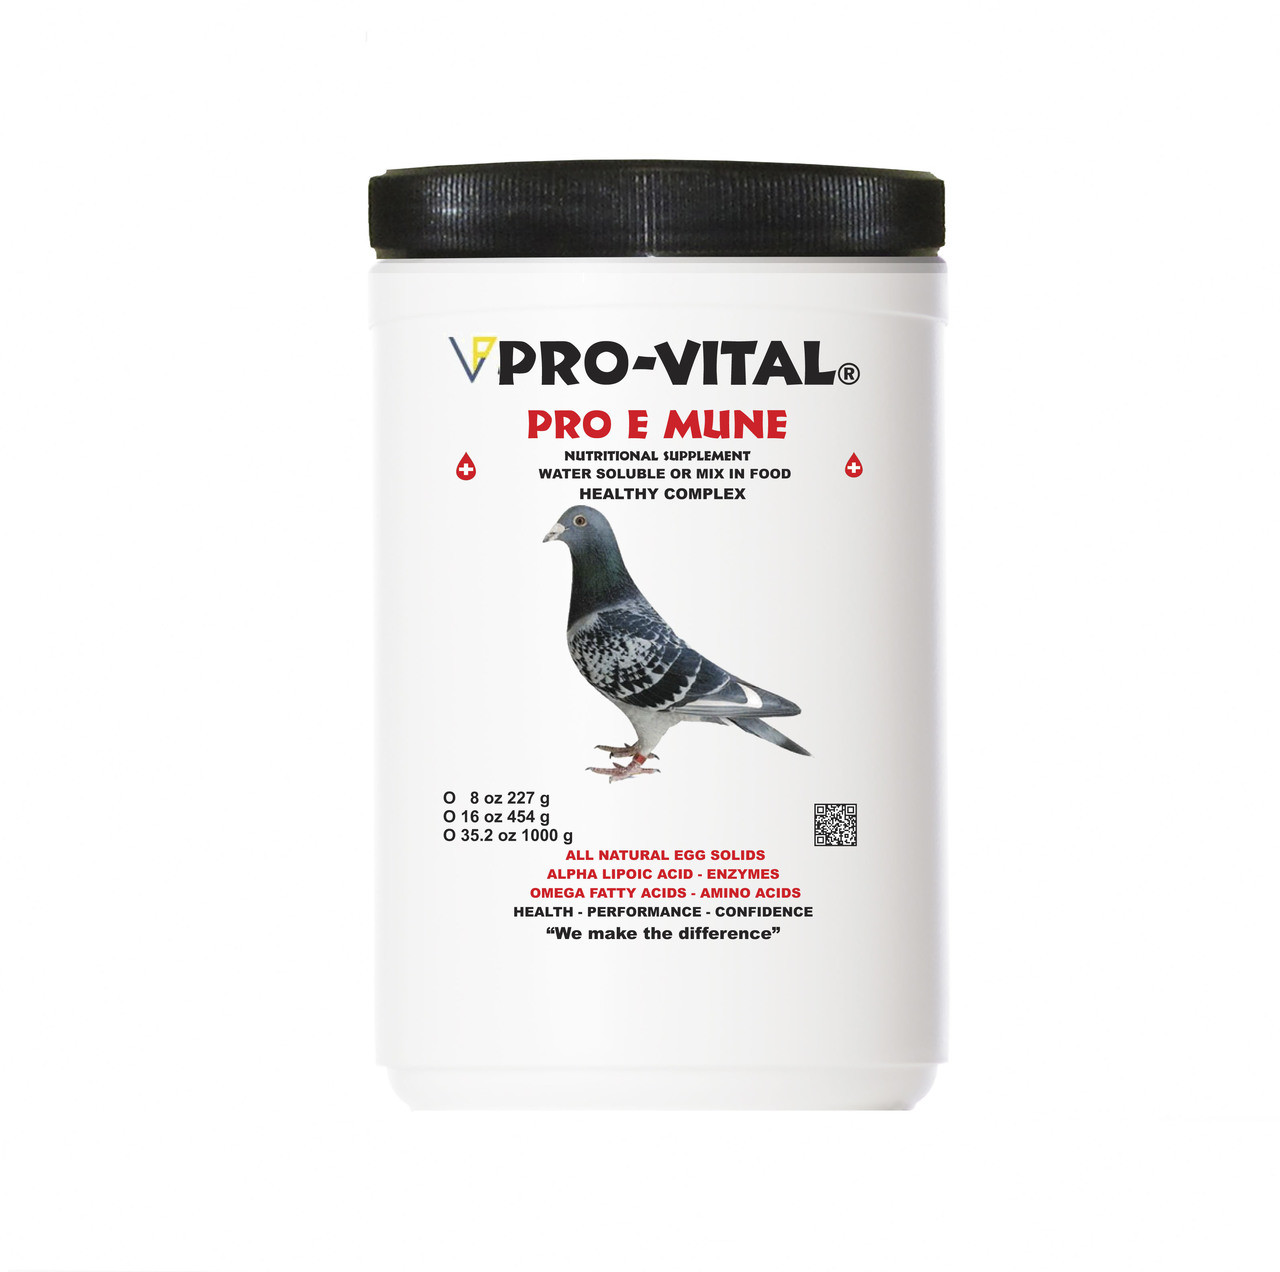 PRO-VITAL® PRO-E-MUNE PIGEON is a feed supplement containing high valuable,  natural egg immunoglobulins (IgY) used for young pigeons and race pigeons